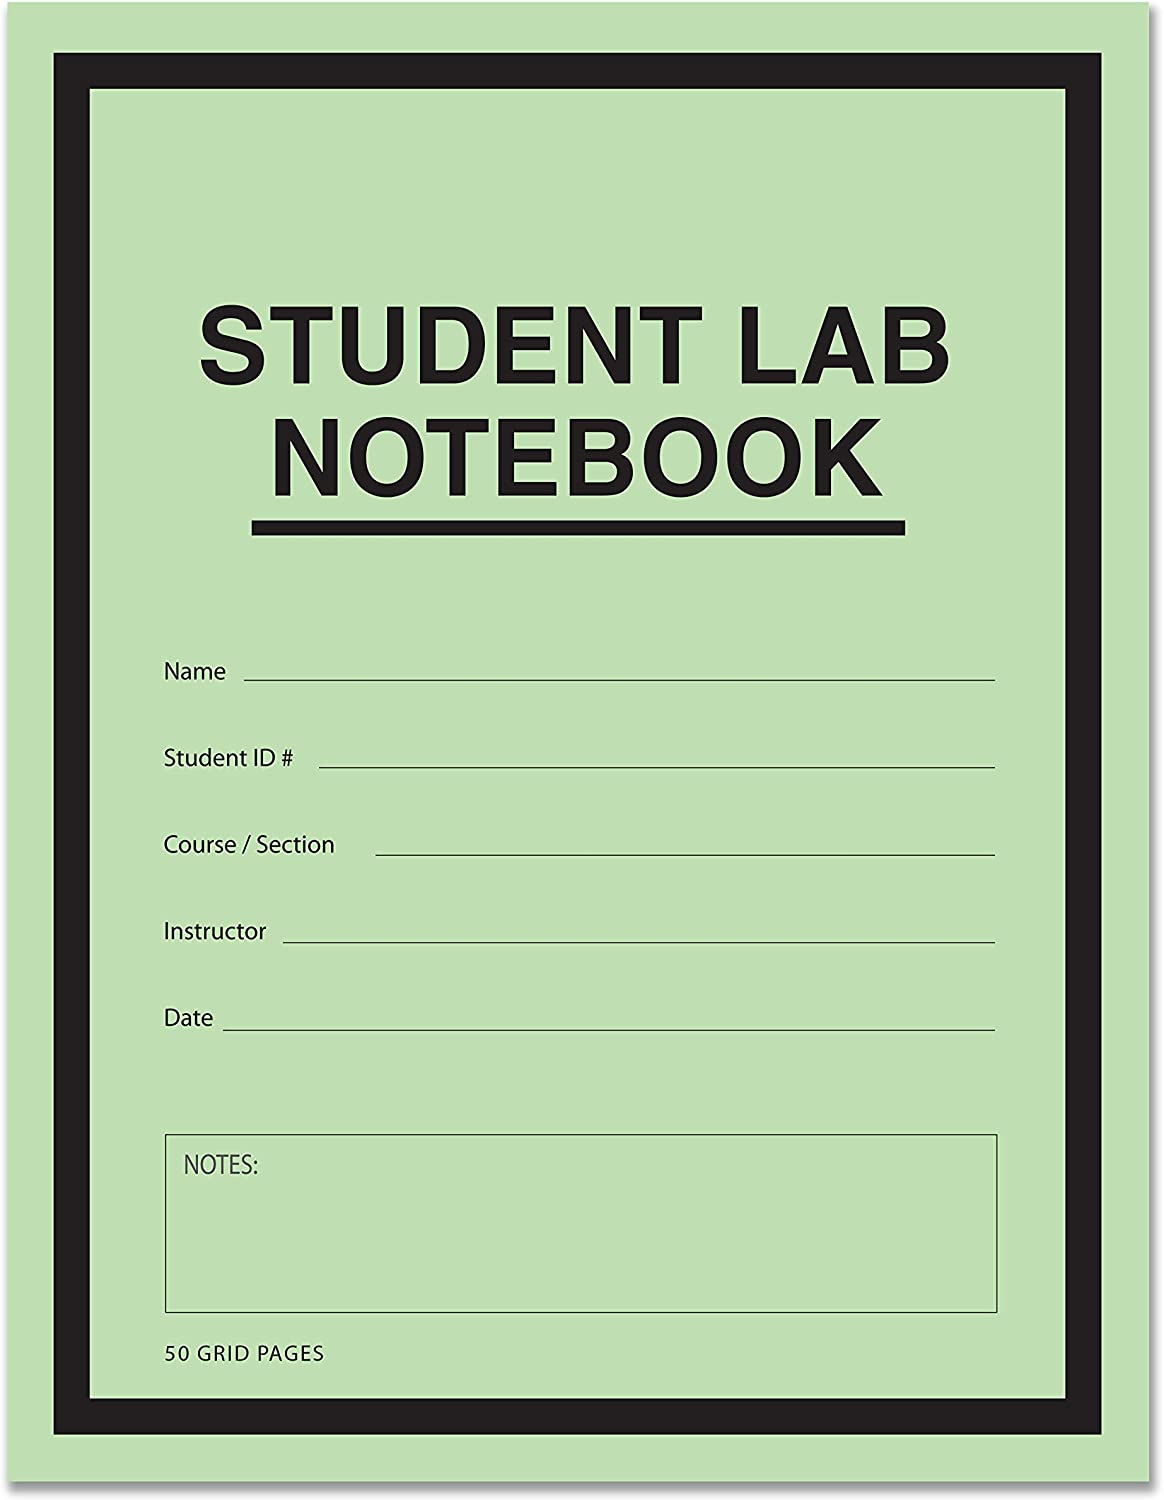 """BookFactory Student Lab Notebook (Scientific Grid Format) 8.5"""" x 11"""" - 50 Pages (1 Pack) Saddle-Stitched - Green Cover (LAB-050-7GSS (Lab Notebook)) : Science Laboratory Notebooks : Office Products"""